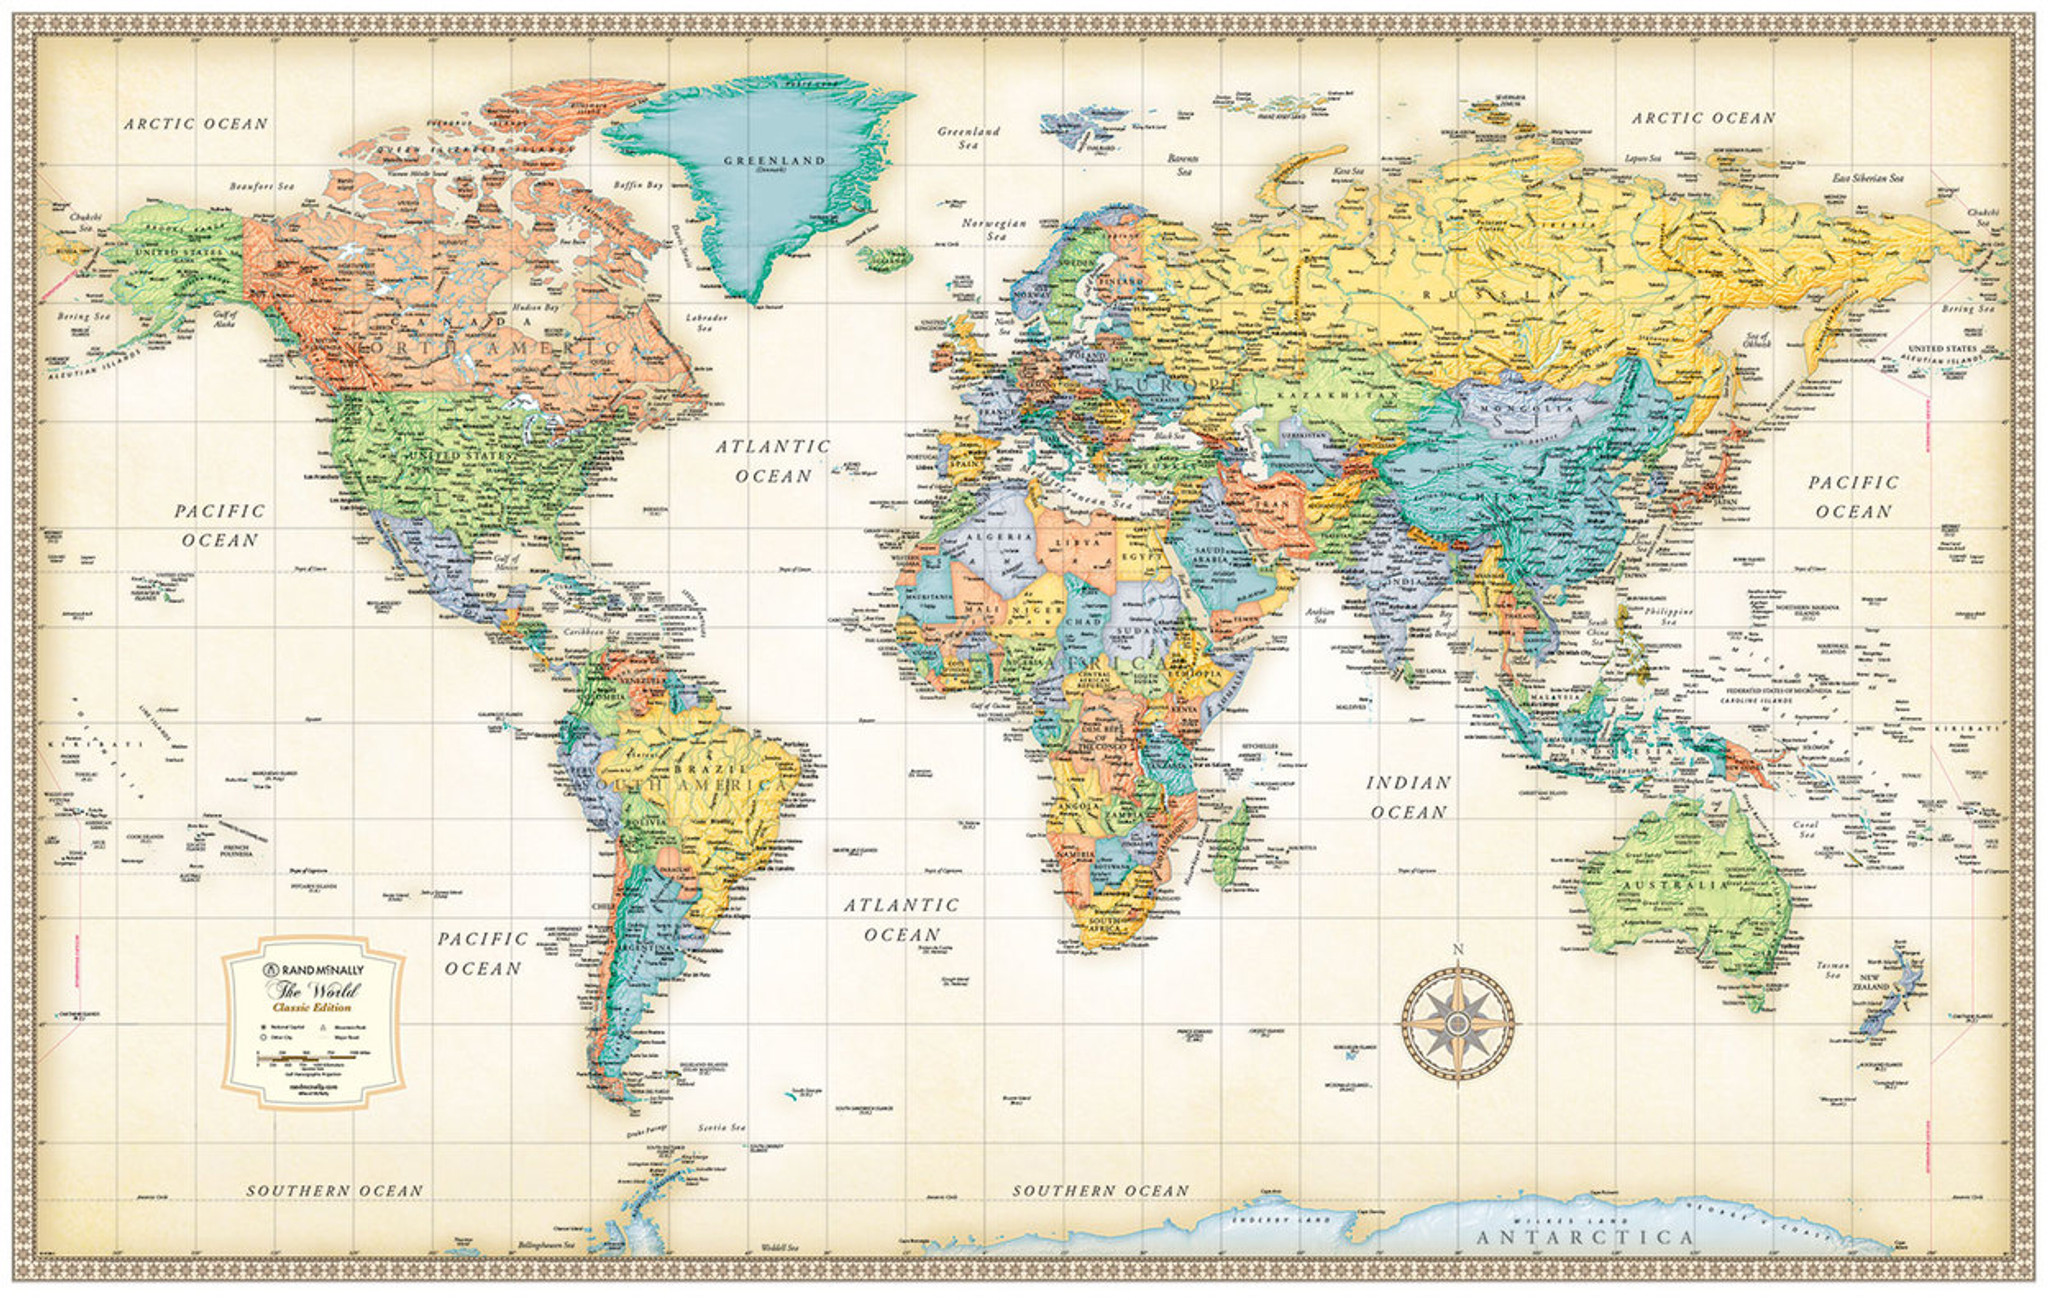 Wall Map Of The World Classic Edition World Wall Maps   Rand McNally Store